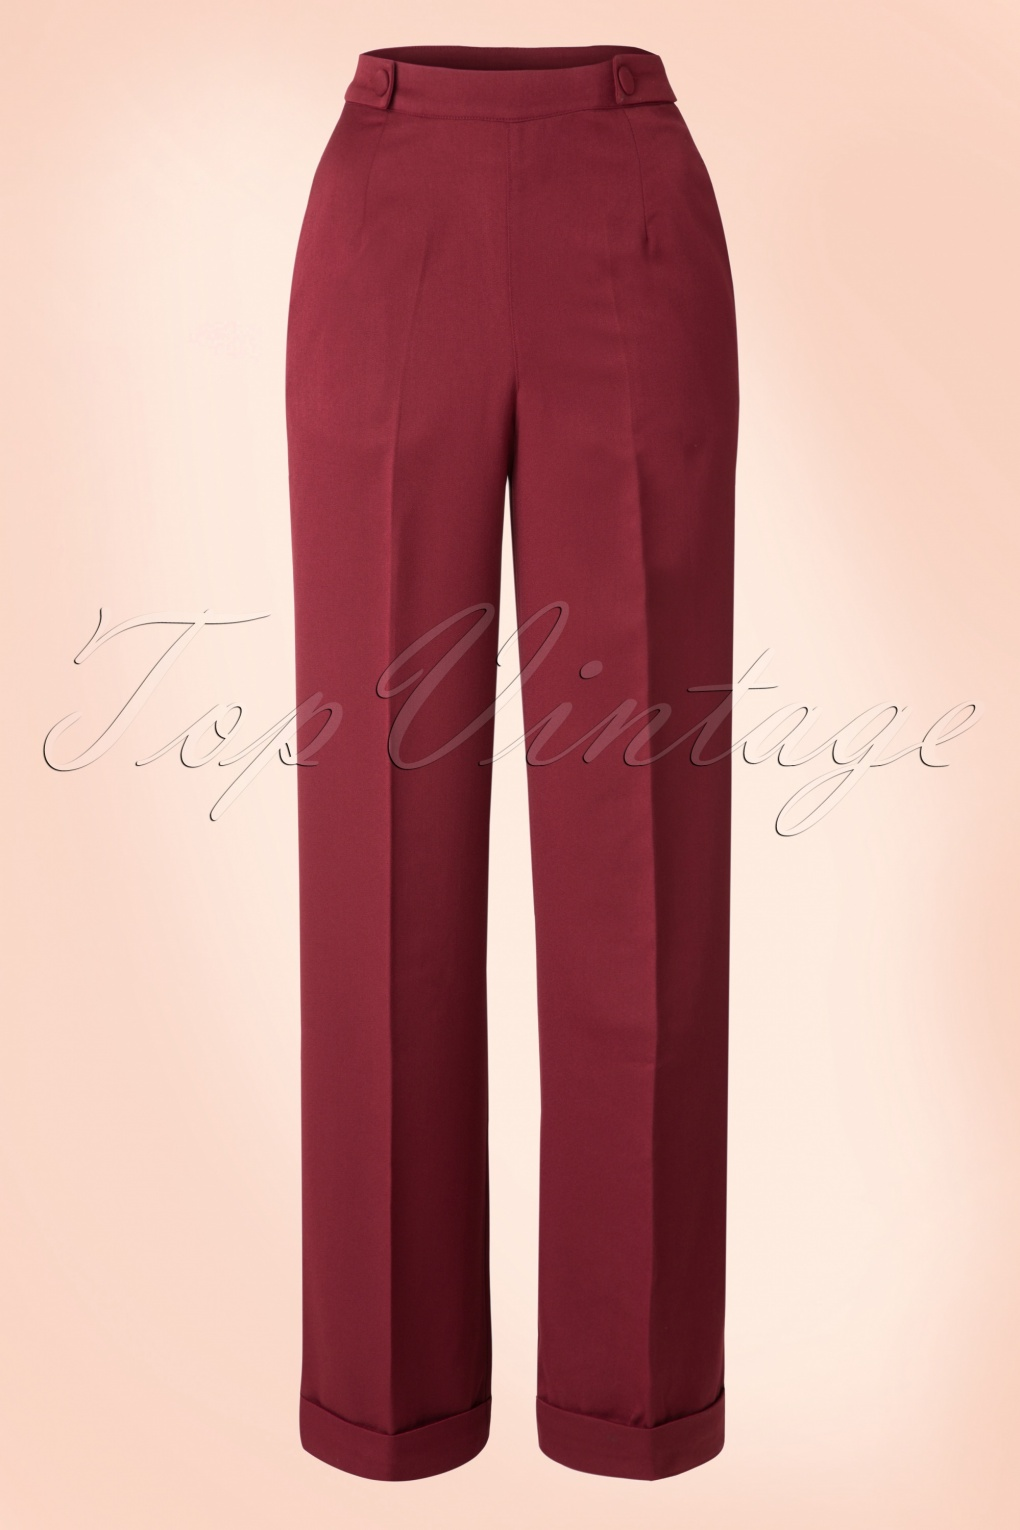 1940s Swing Pants & Sailor Trousers- Wide Leg, High Waist 40s Party On Classy Trousers in Bordeaux £35.51 AT vintagedancer.com